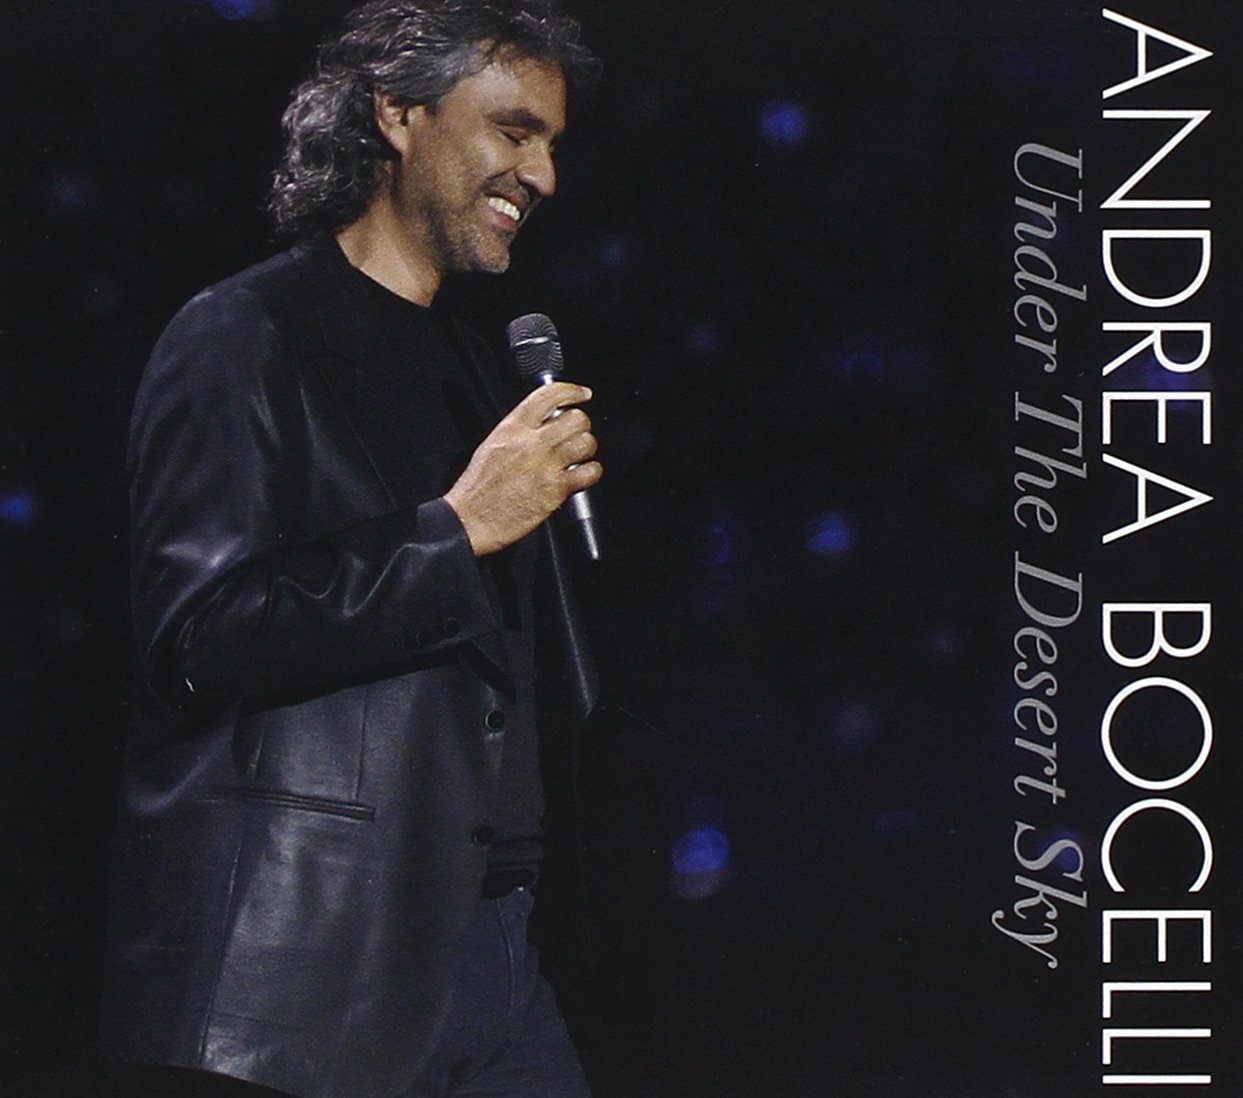 Andrea Bocelli: Under the Desert Sky [DVD Included] by Sugar